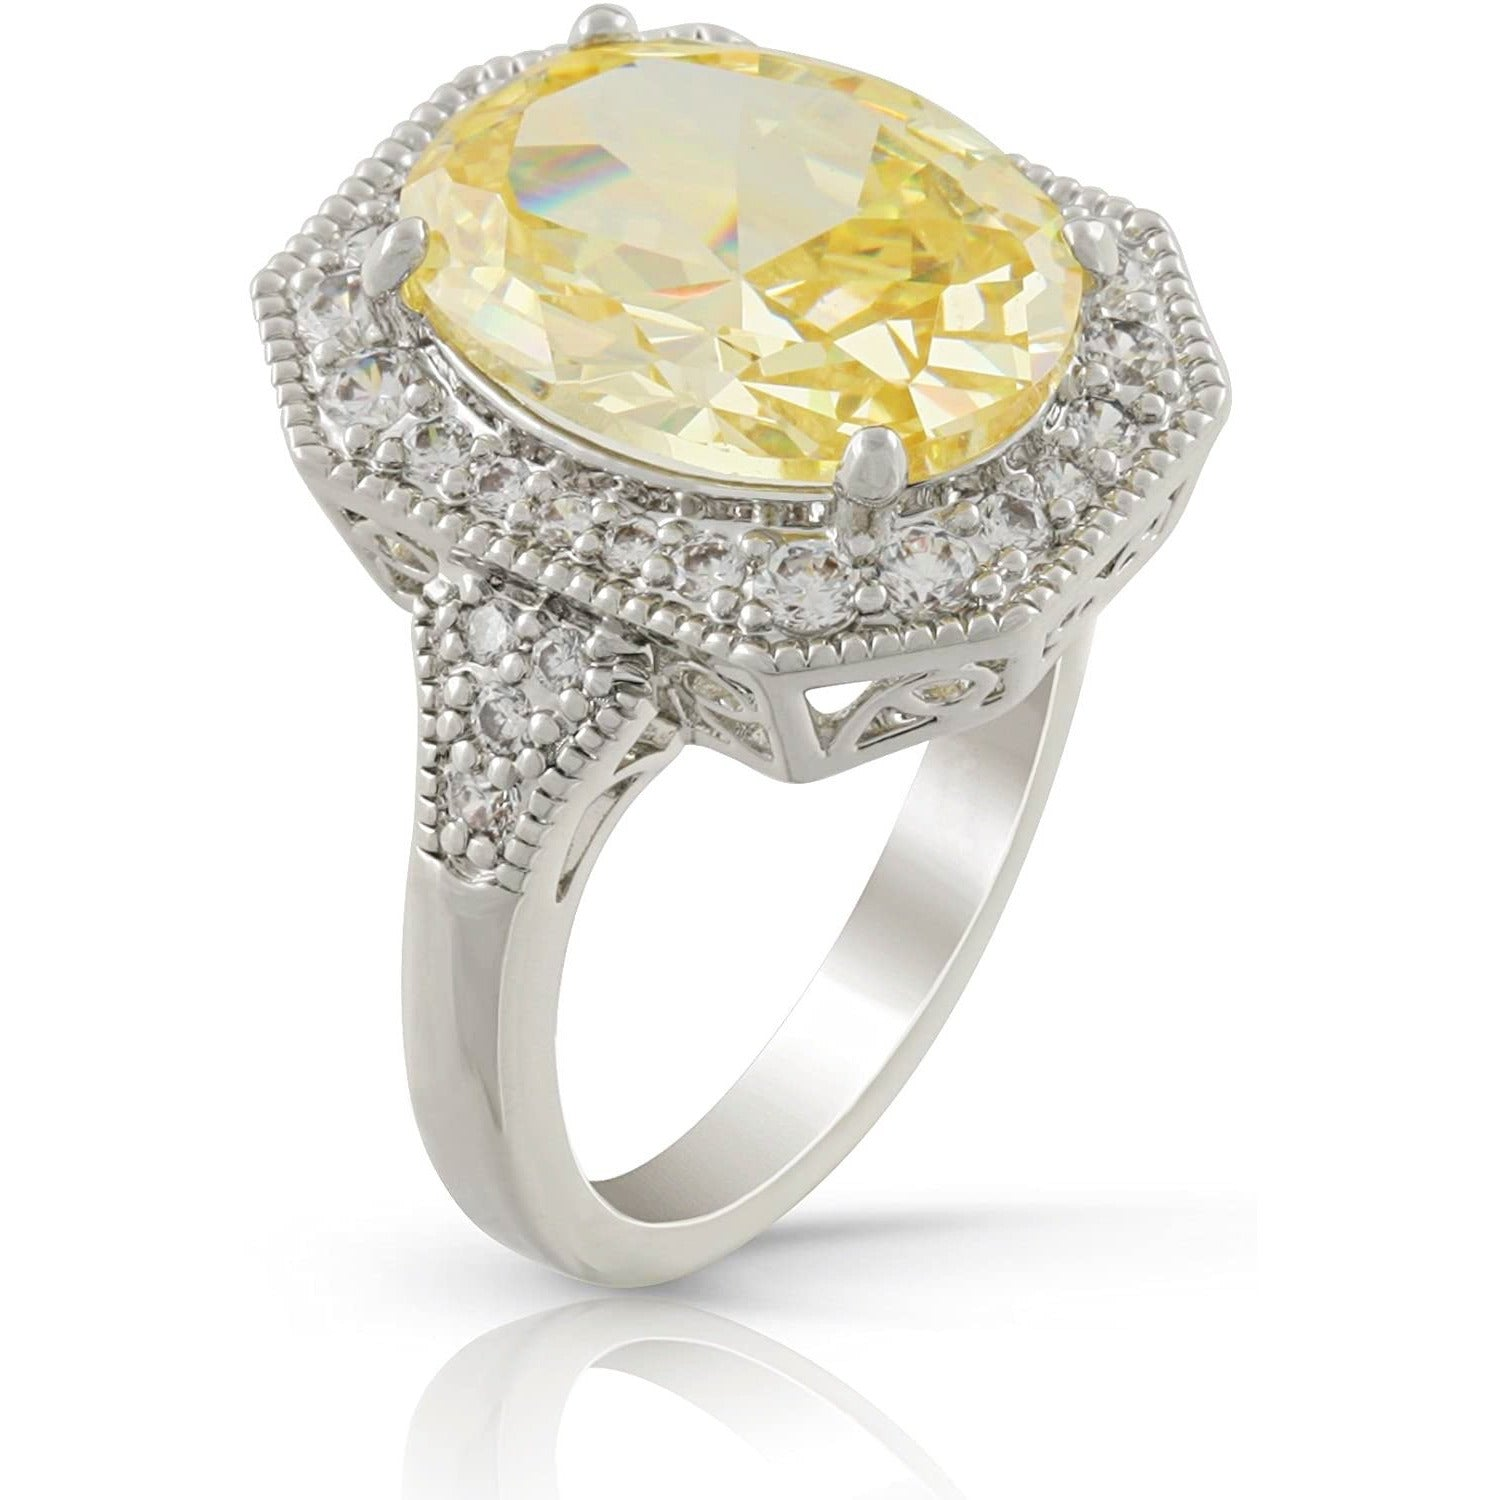 Made in New York City, our beautiful silver plated brass ring embellished with a cubic zirconia oval citrine cushion cut stone and white cubic zirconia diamonds on the surrounding.